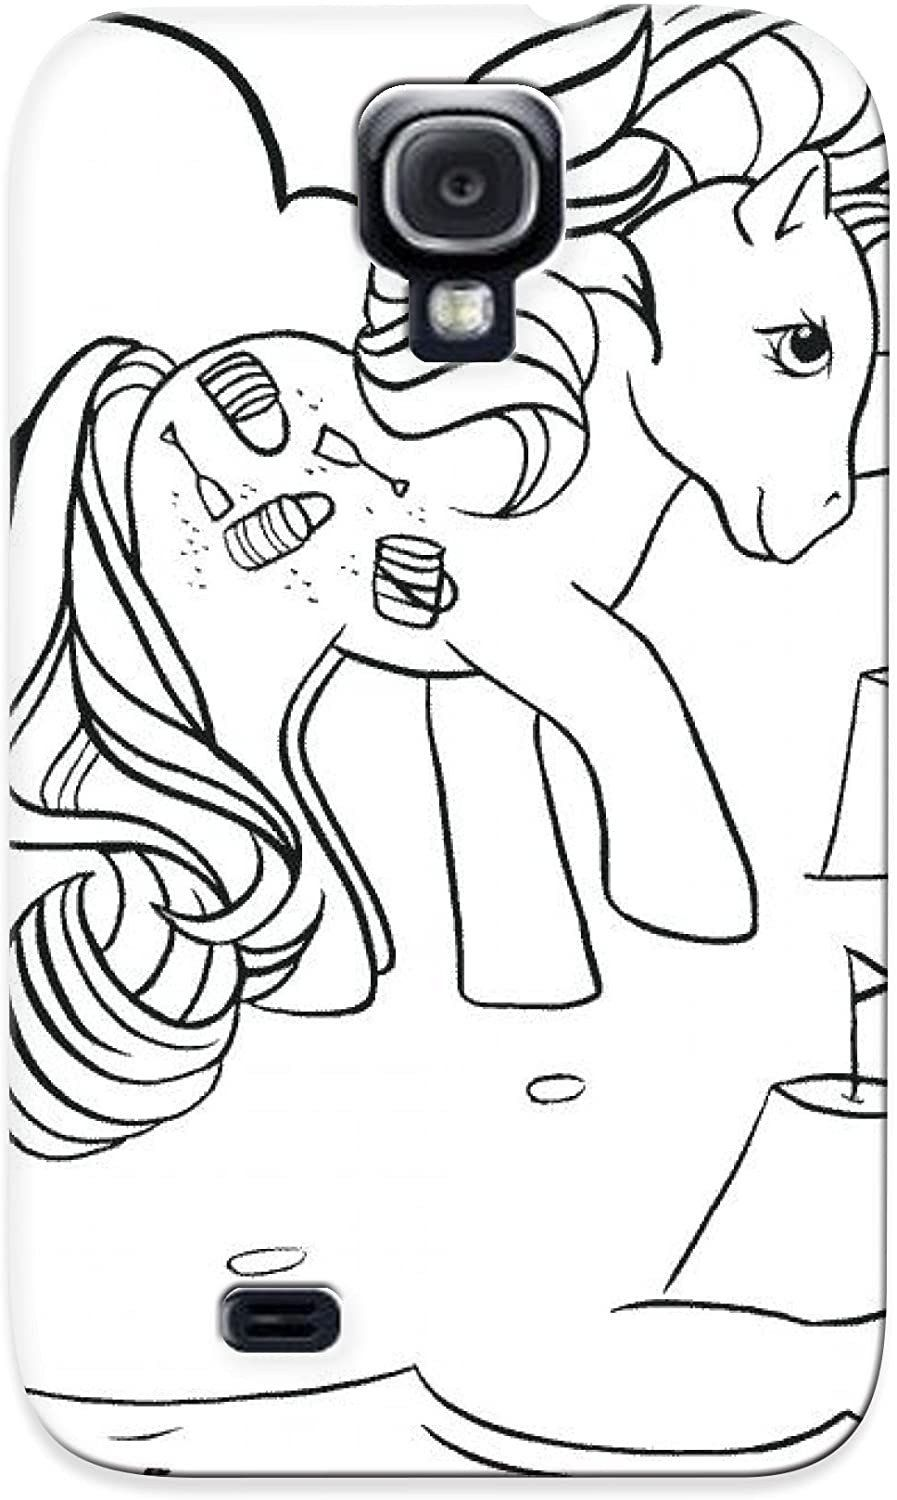 Kids Coloring Pages To Print Amazon Downsales Faddish Phone Barbie Children Coloring Fairy Coloring Pages Printable Coloring Pages Coloring Pages To Print [ 1500 x 897 Pixel ]